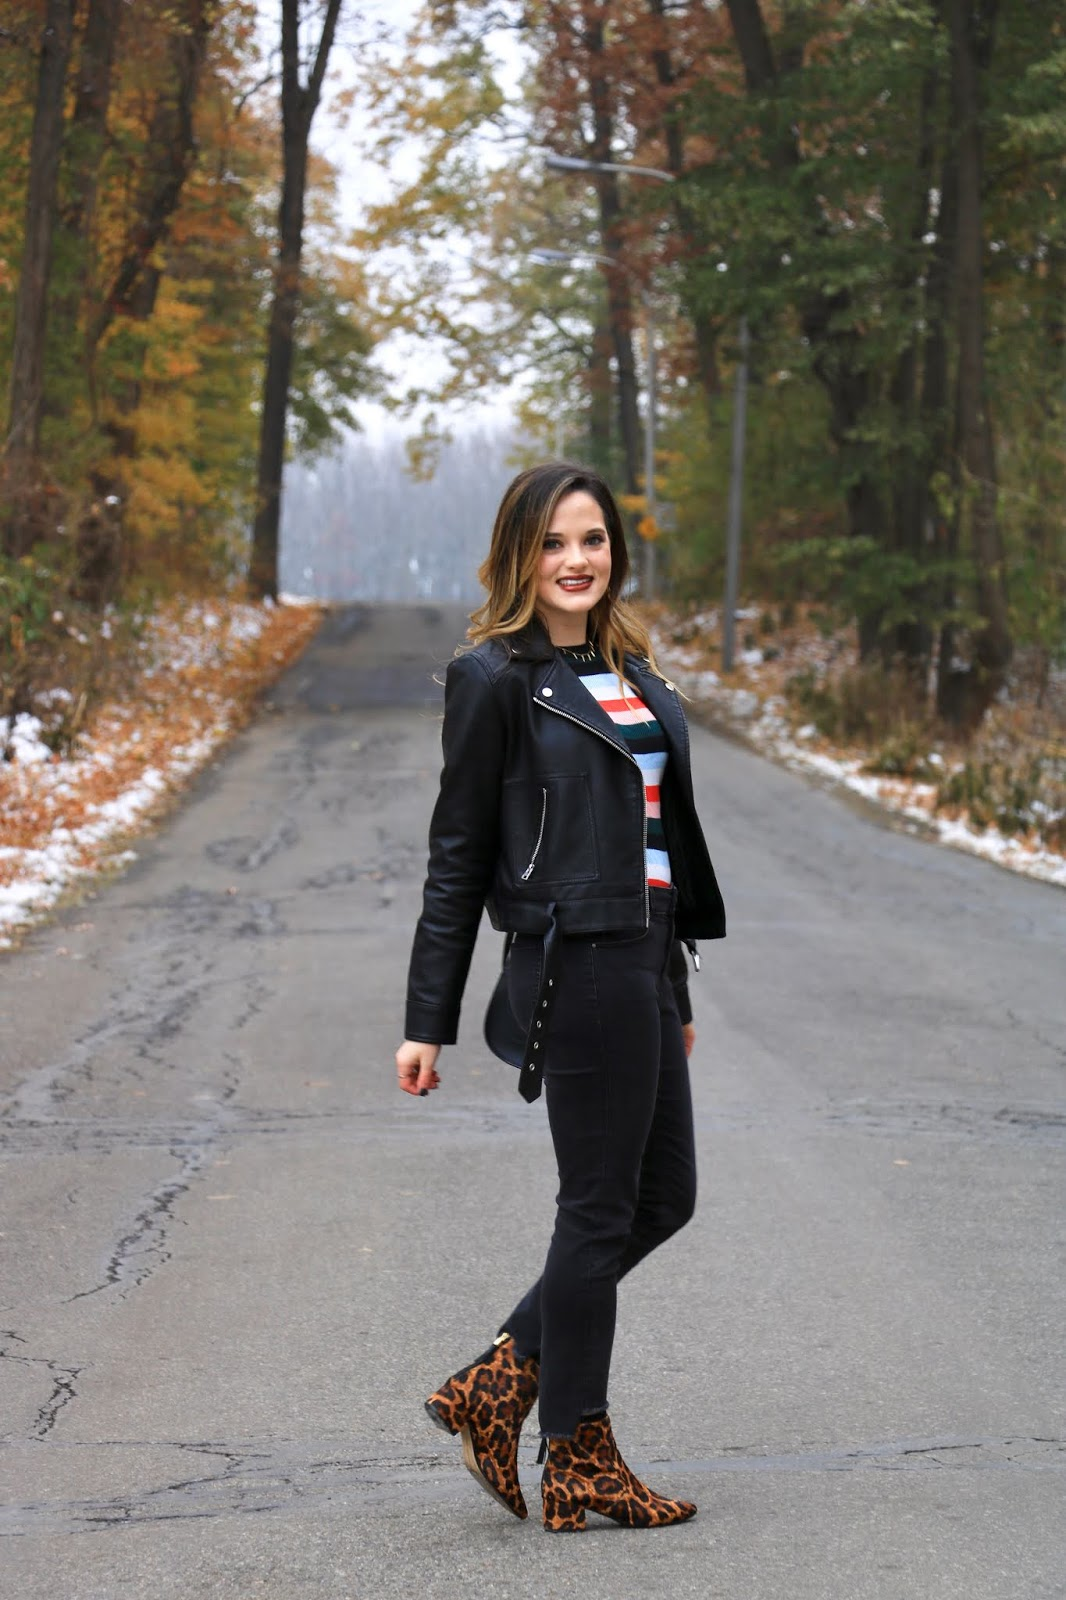 Nyc fashion blogger Kathleen Harper wearing a black jeans outfit with a leather jacket.